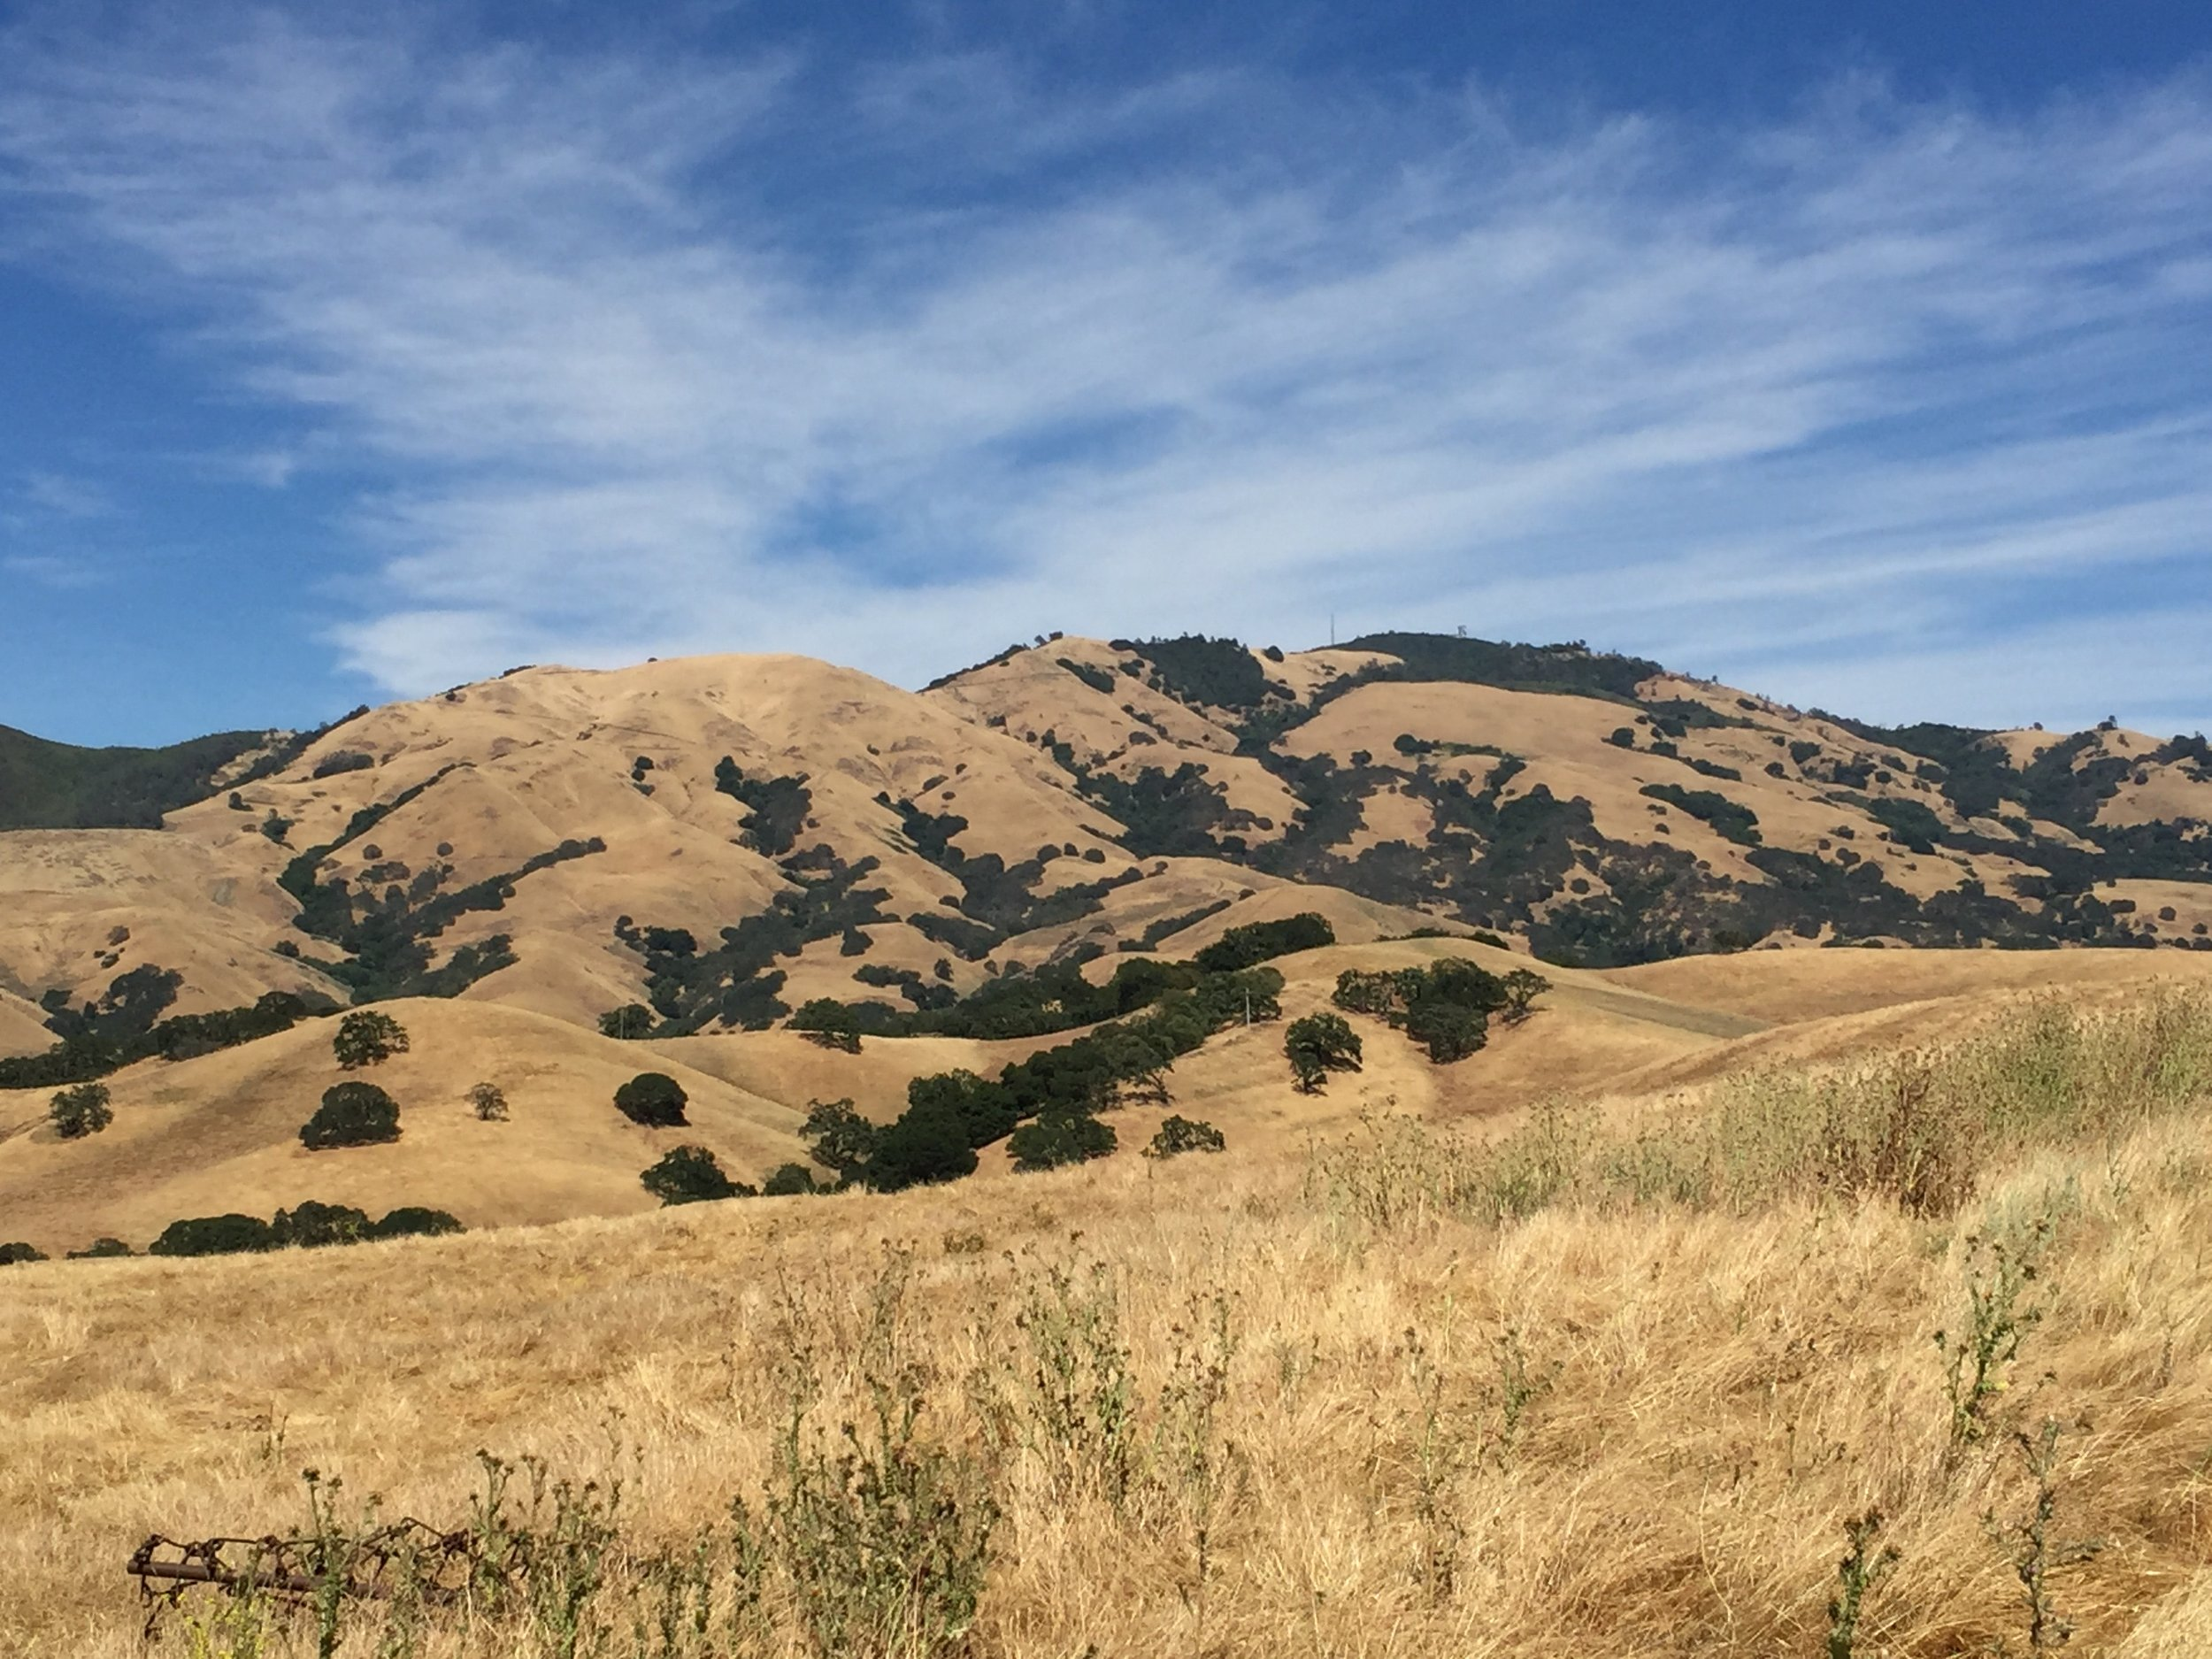 Mt Diablo, as seen from China Wall